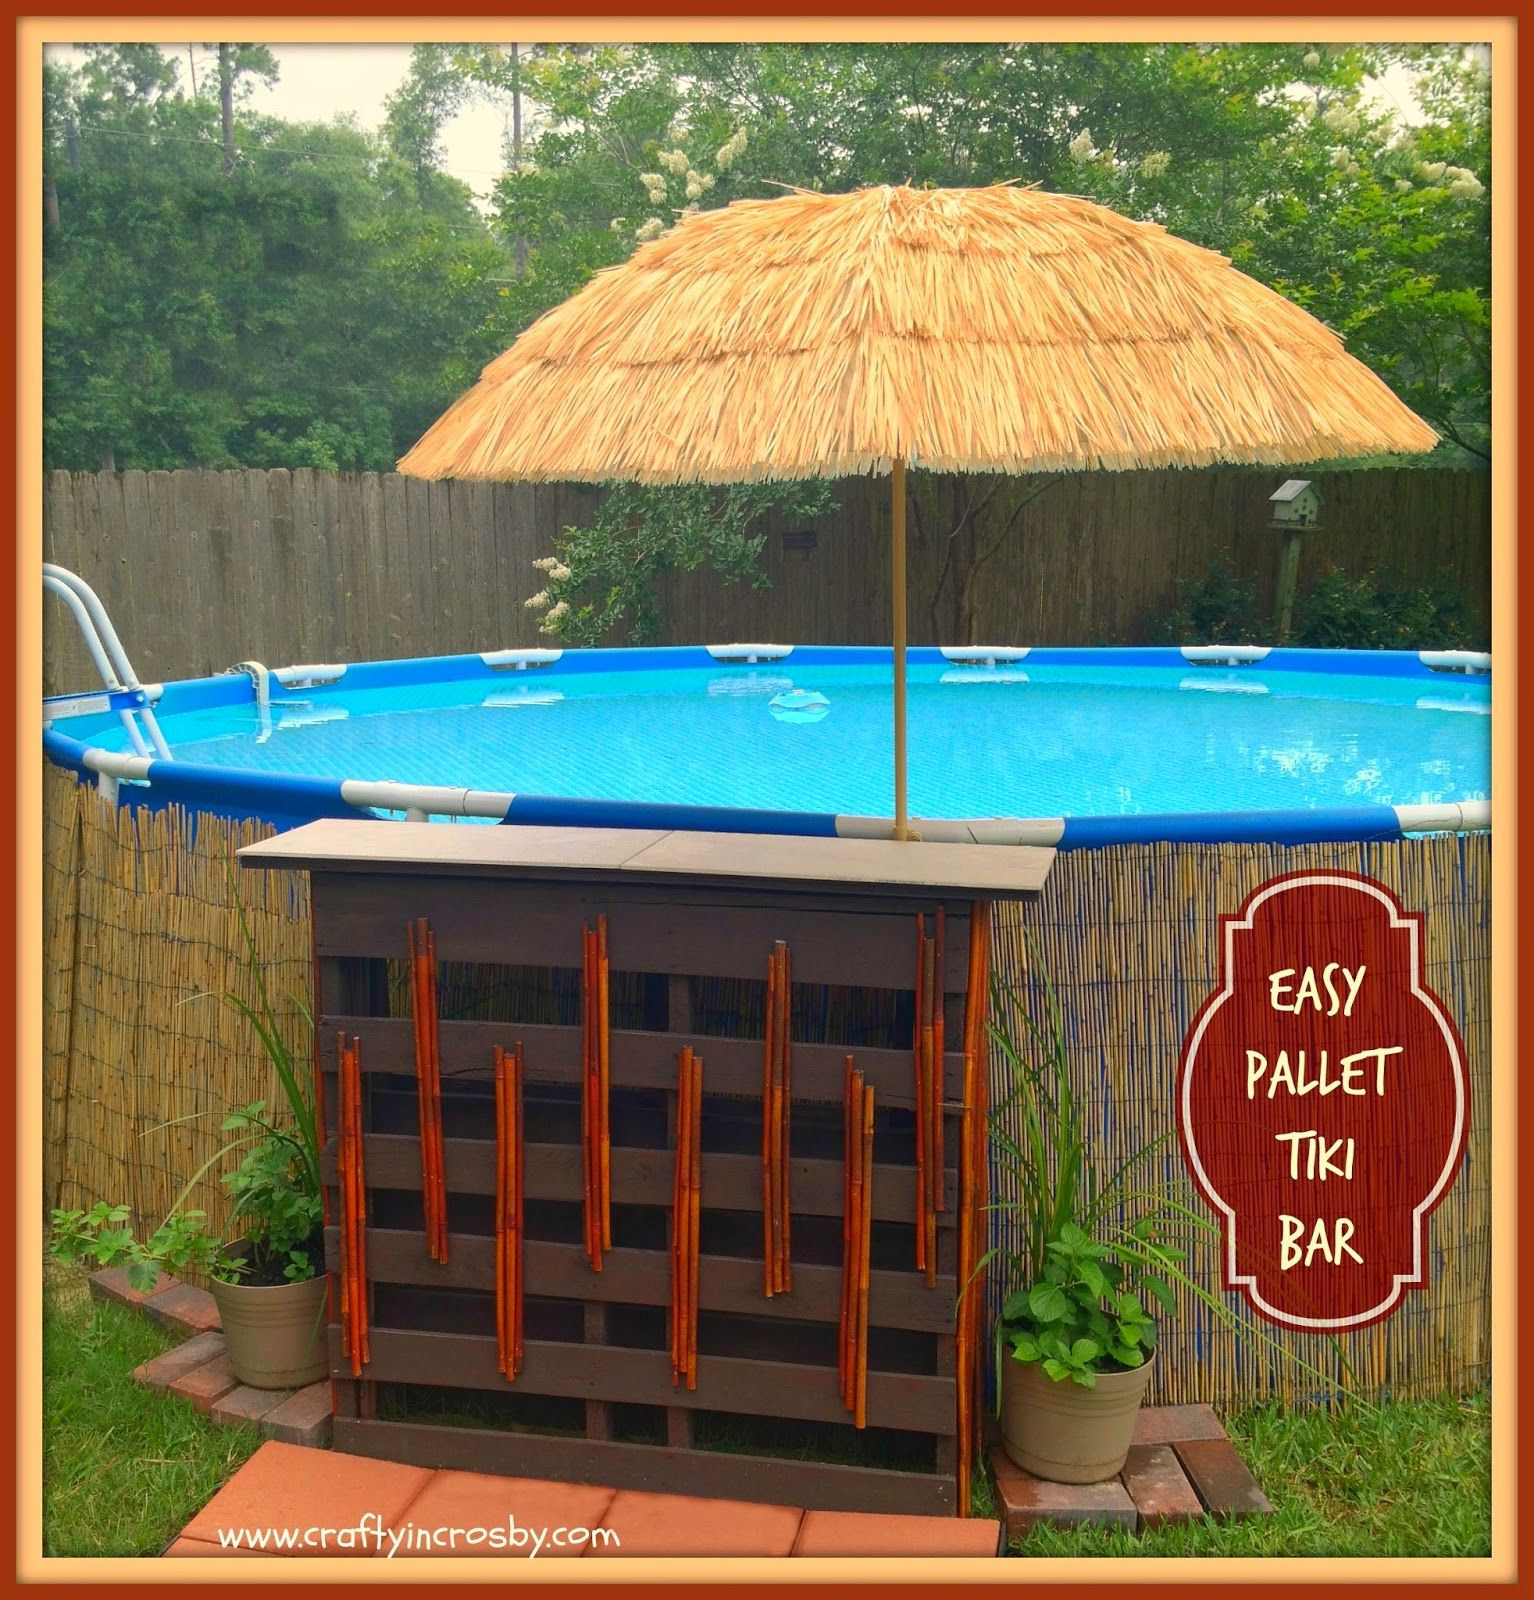 Diy Pallet Tiki Bar Feature Of The Day Pool Landscaping Pool Decor Above Ground Pool Landscaping